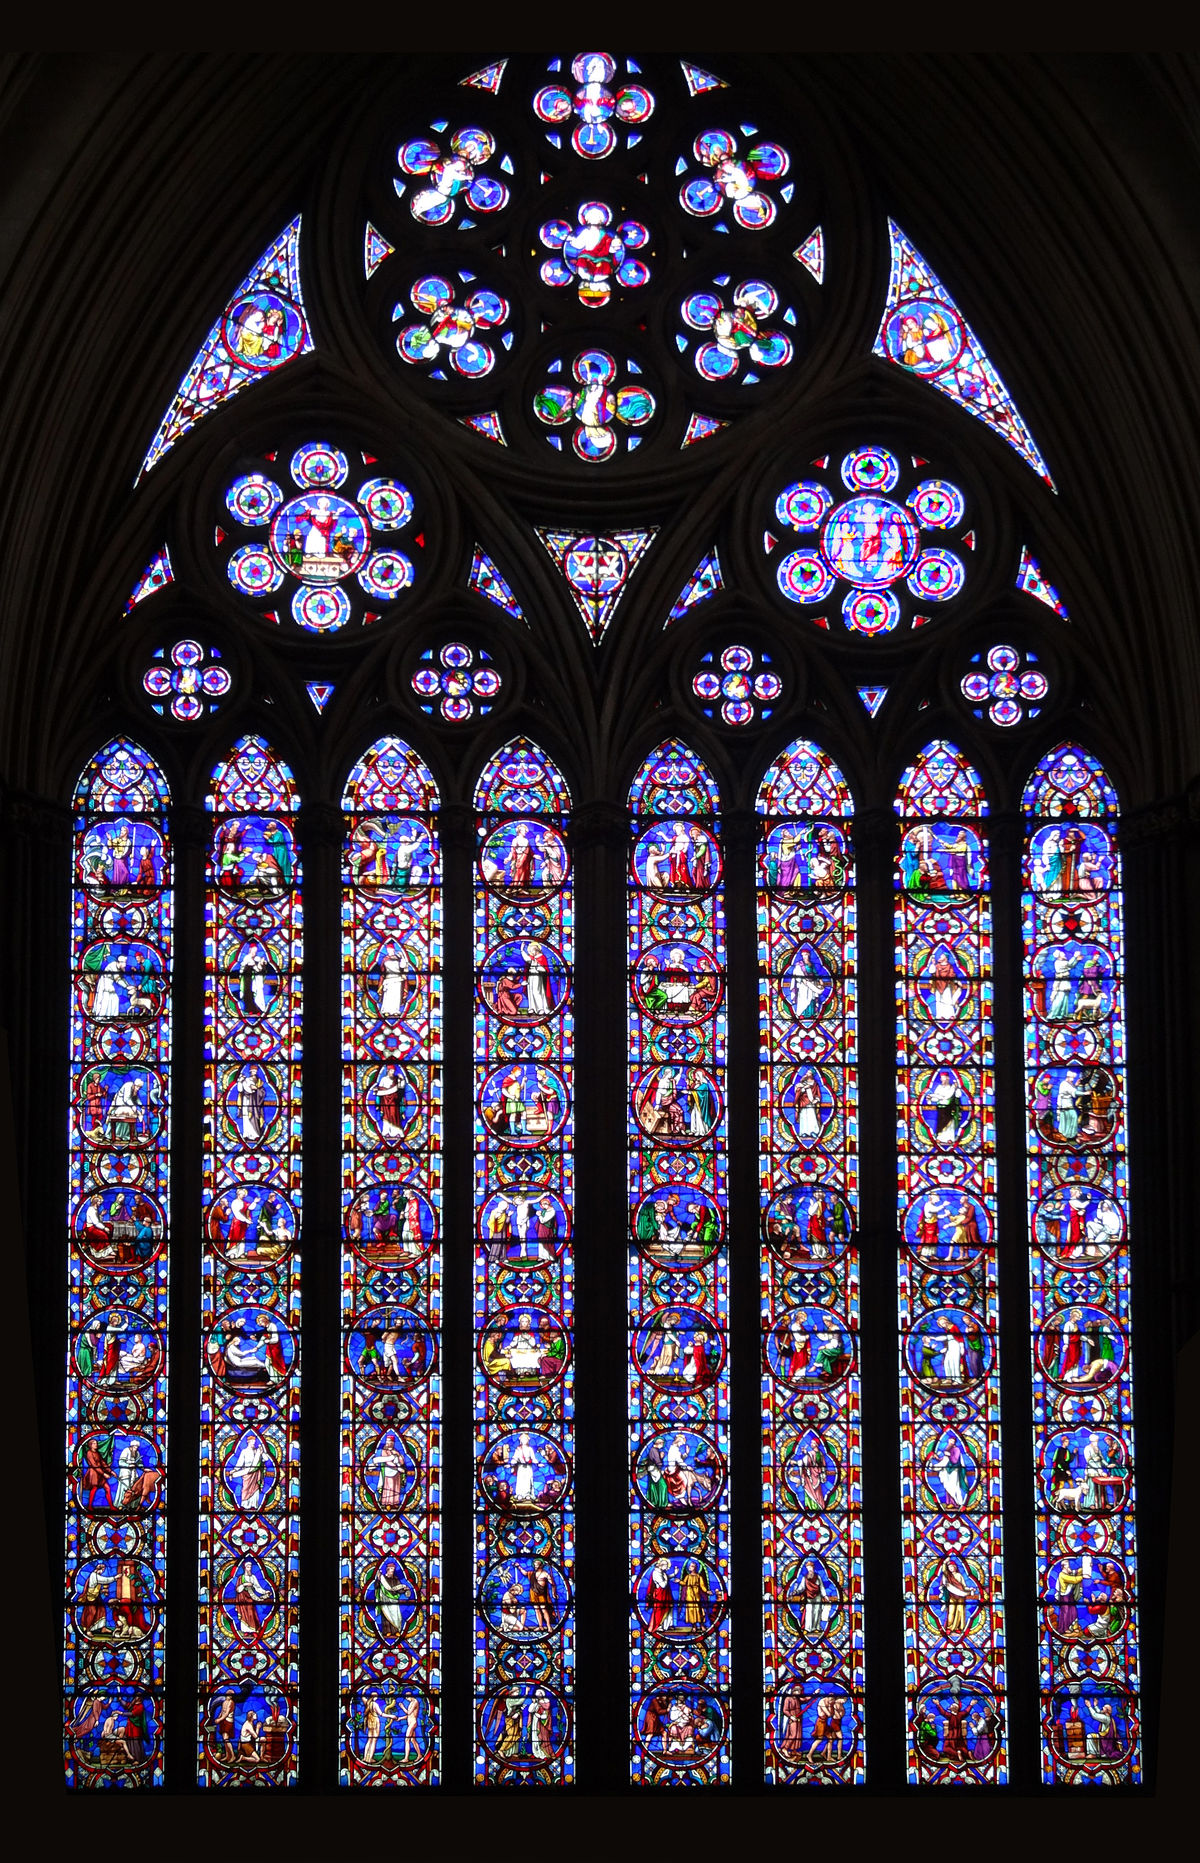 Stained Glass Windows : British and irish stained glass wikipedia